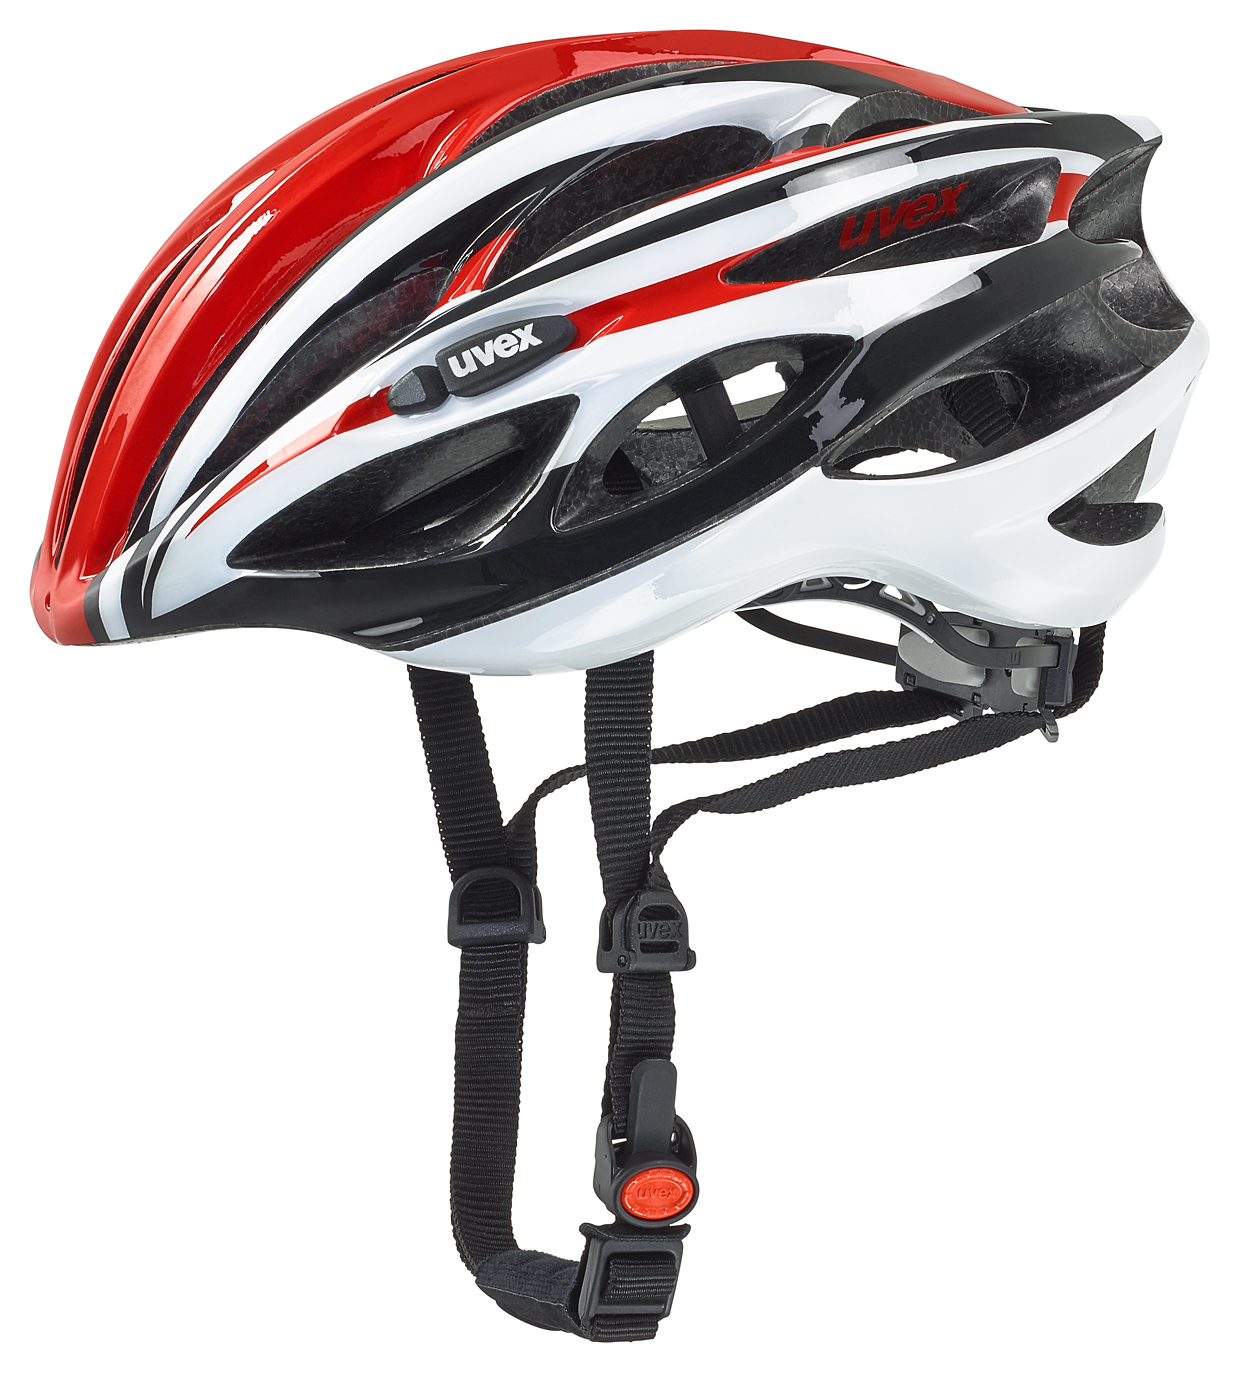 UVEX RACE 1, RED-WHITE 2016 55-59 cm